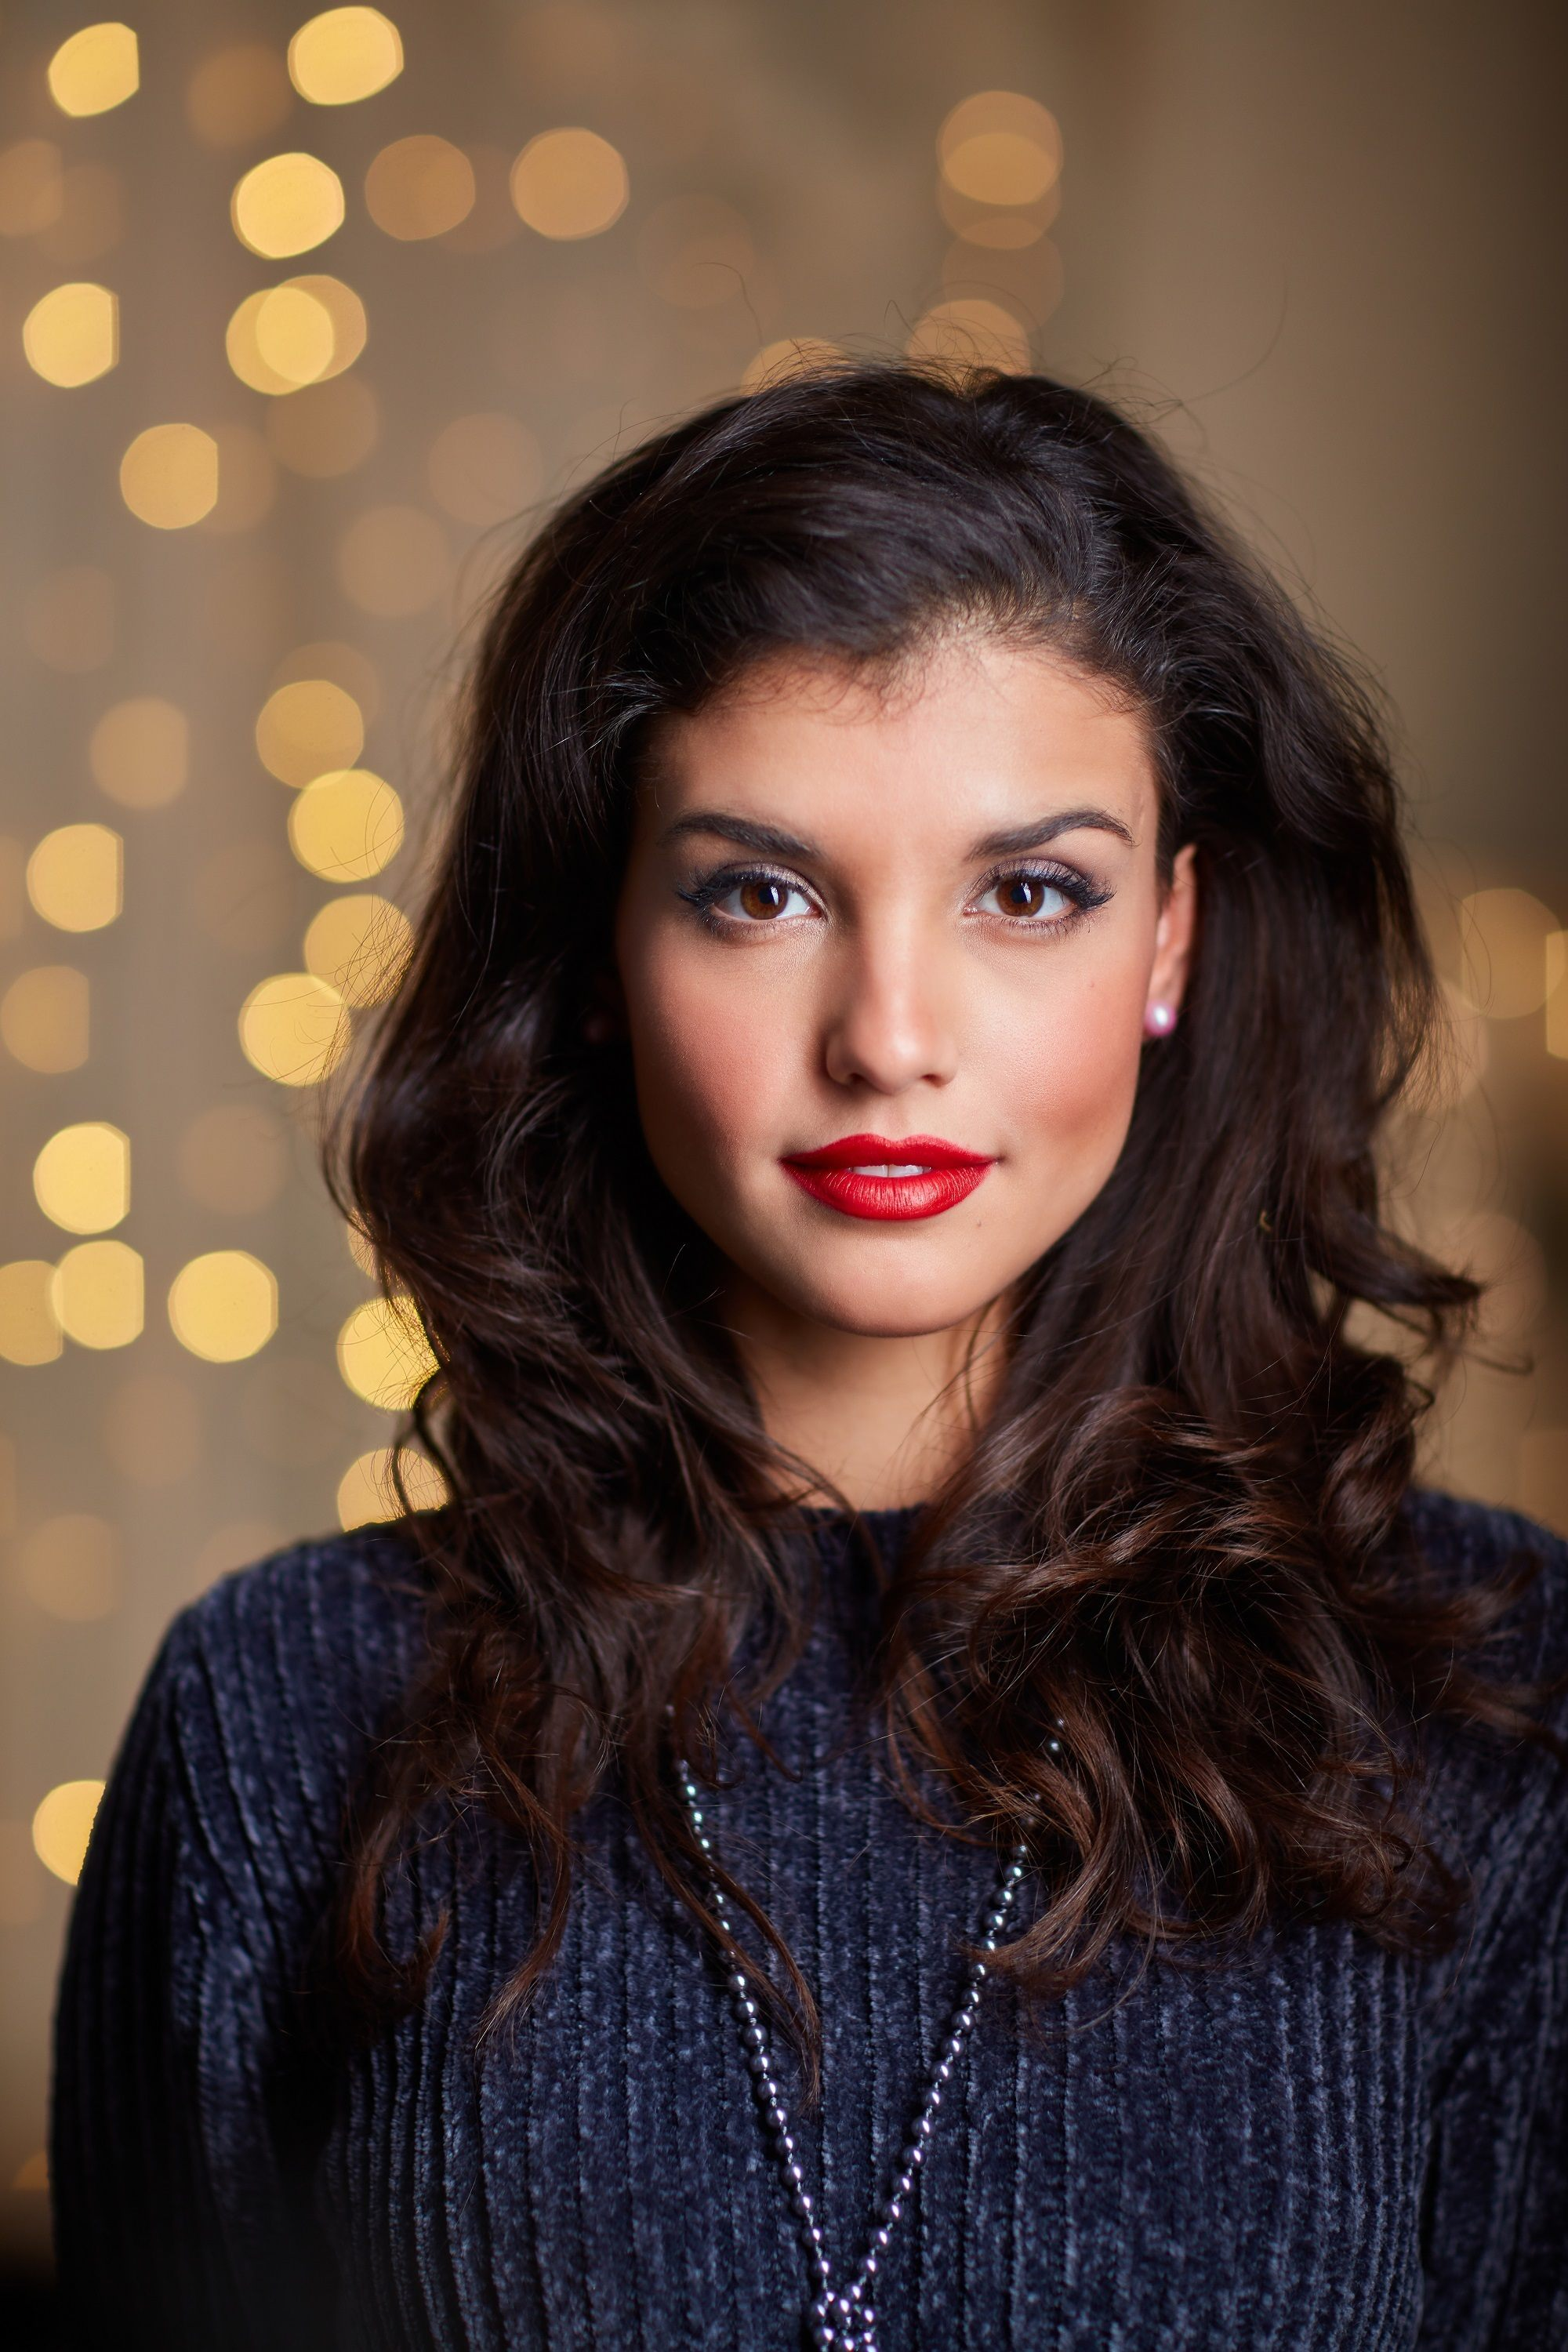 Christmas hairstyles: Closeup shot of a woman with dark wavy hair wearing dark blue blouse with Christmas lights at the background